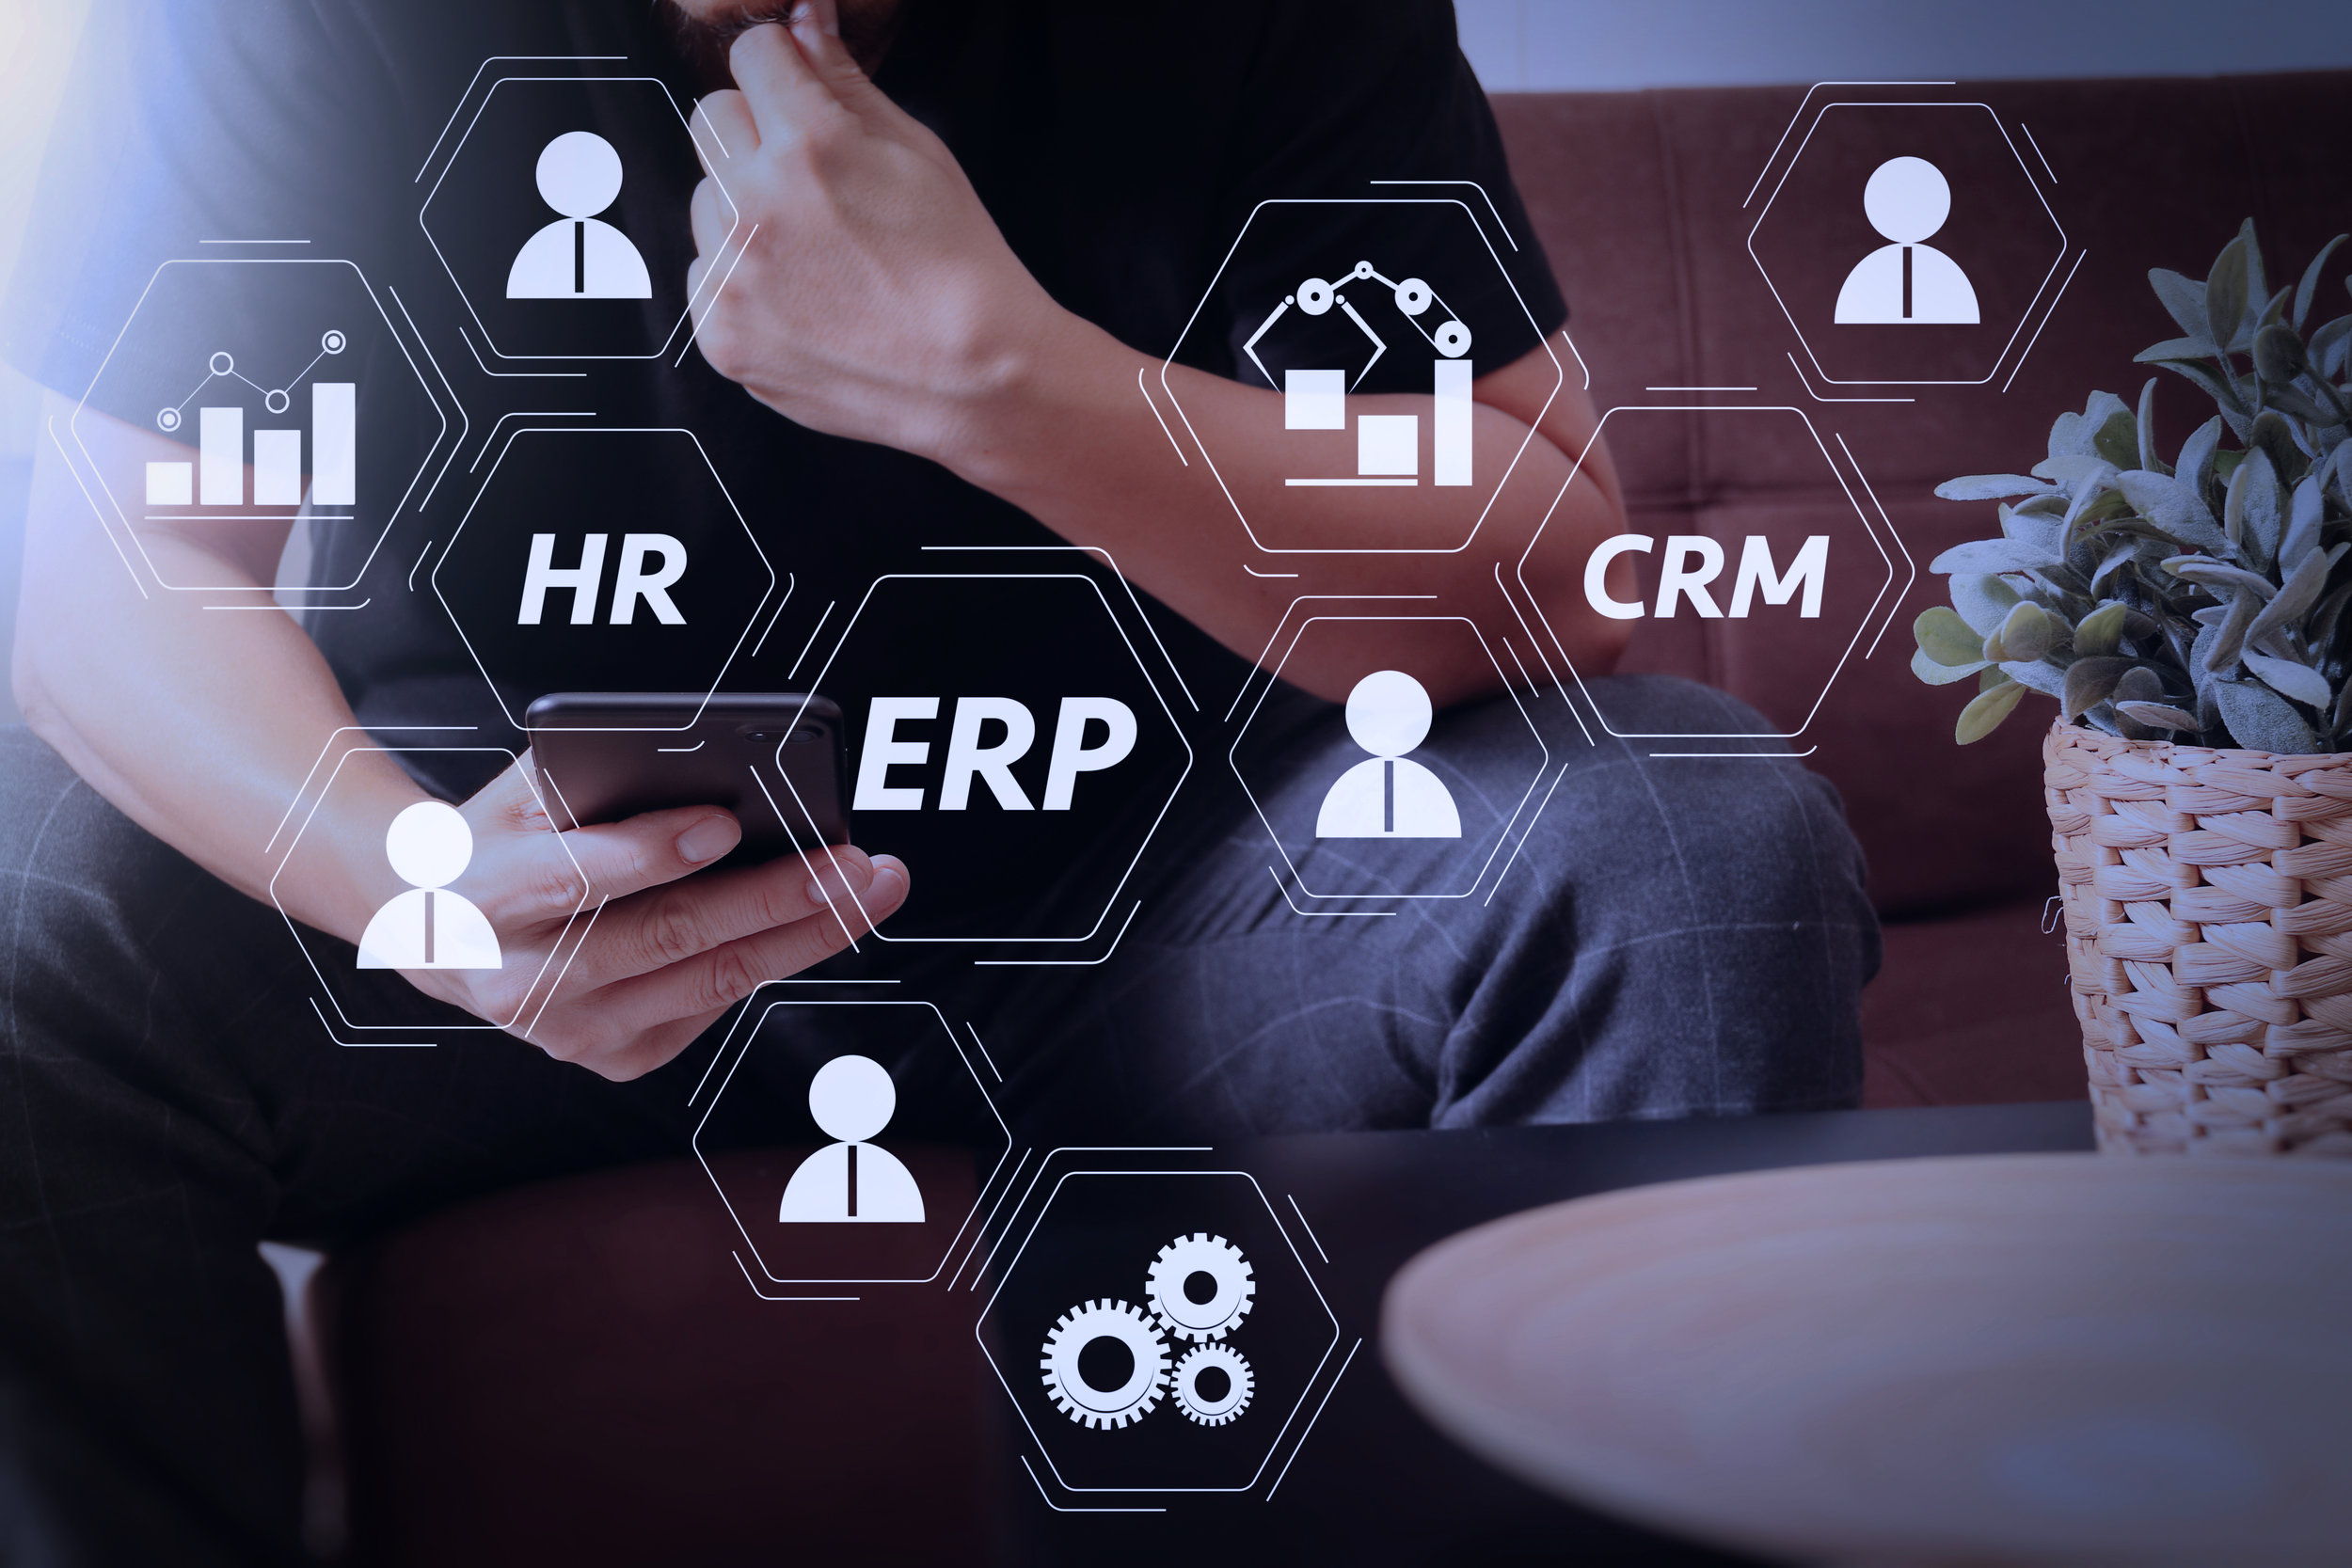 Web Based ERP Software - Advantages And Disadvantages